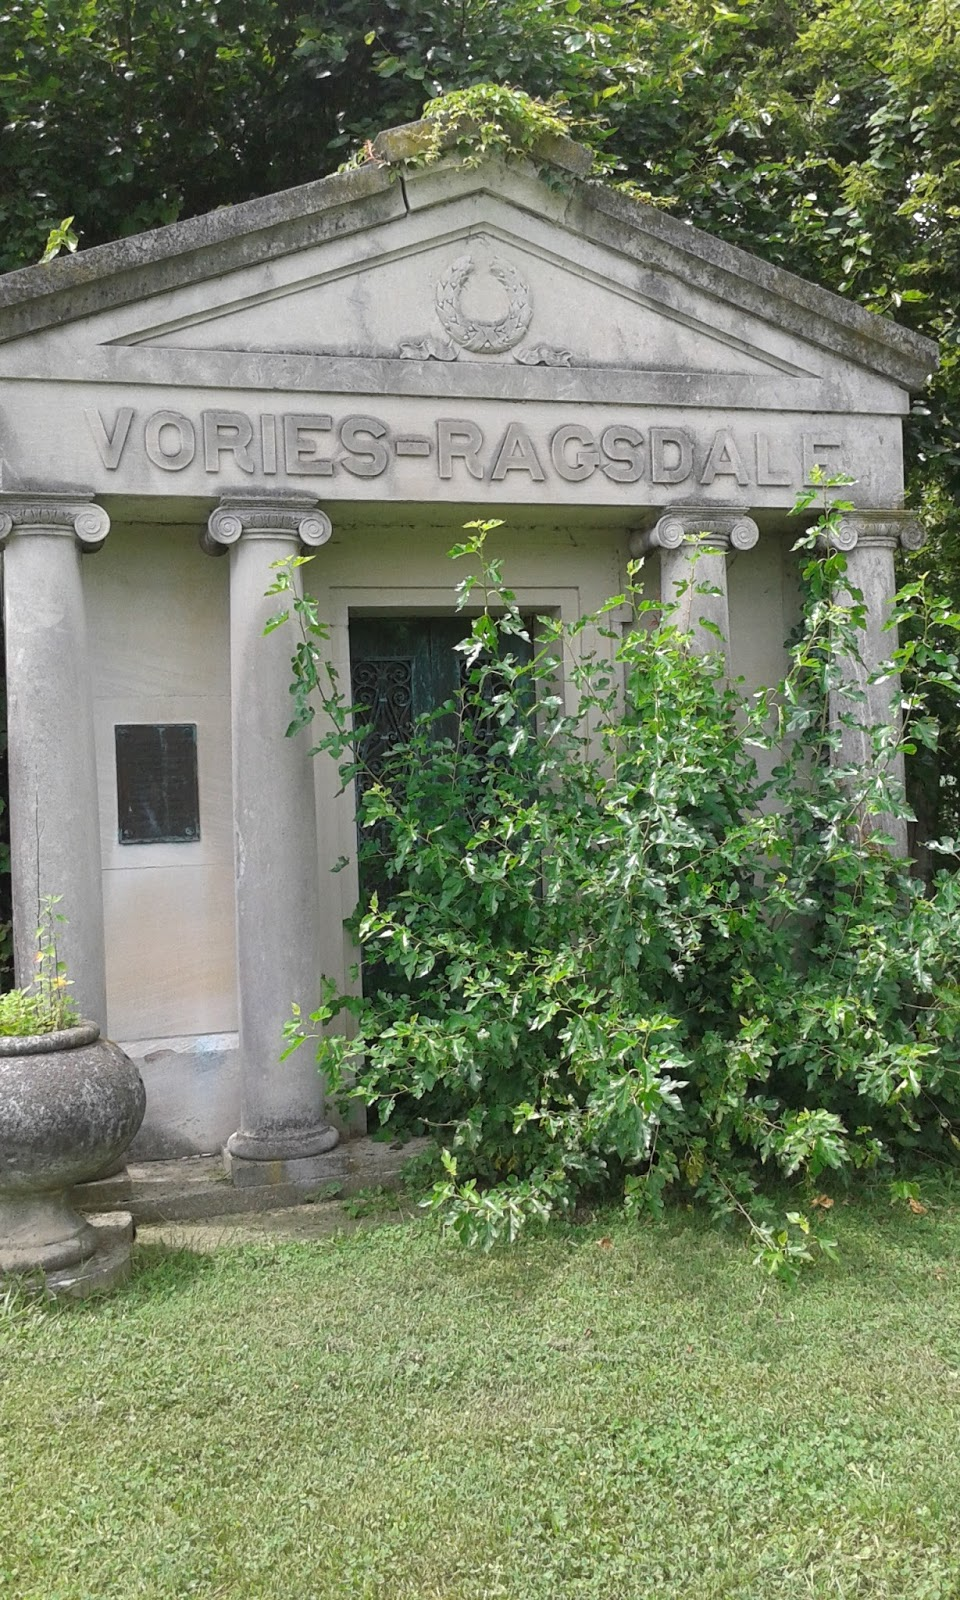 Indiana knox county ragsdale - This Is A Mausoleum In The Back Of The Cemetery That Is For The Vories Ragsdale Family